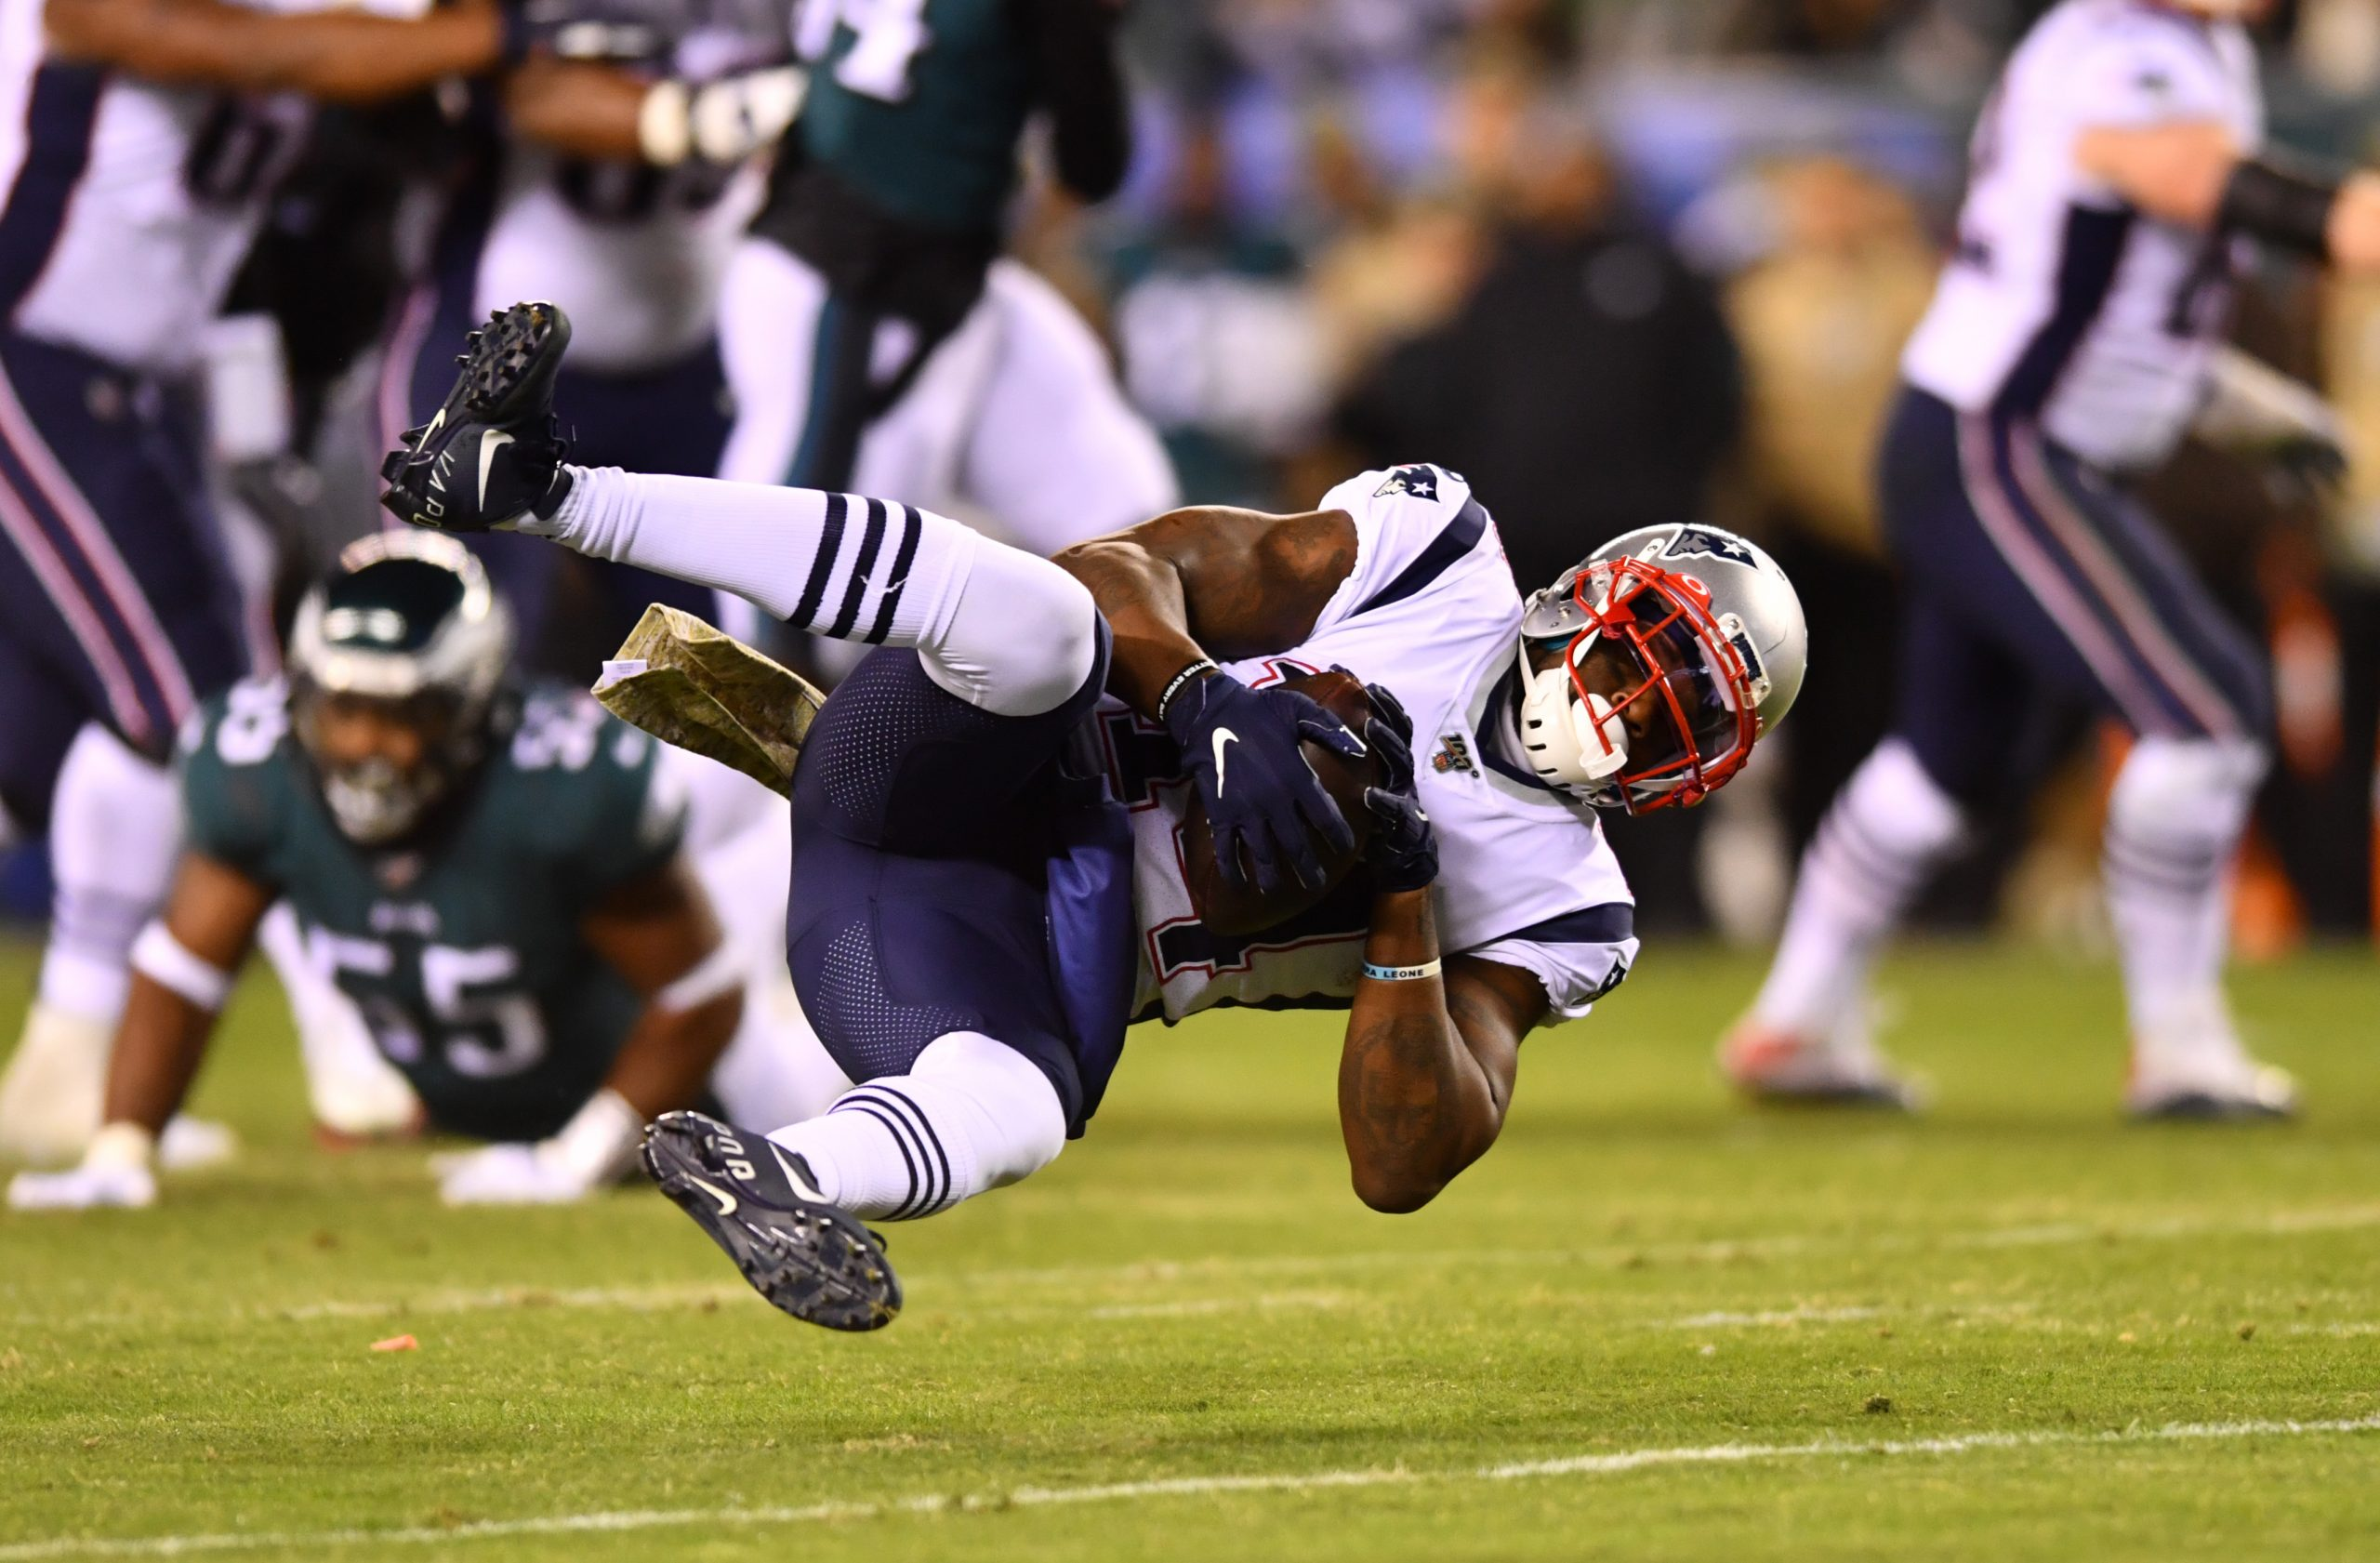 PHILADELPHIA, PA - NOVEMBER 17: New England Patriots Wide Receiver Mohamed Sanu (14) makes a reception in the first half